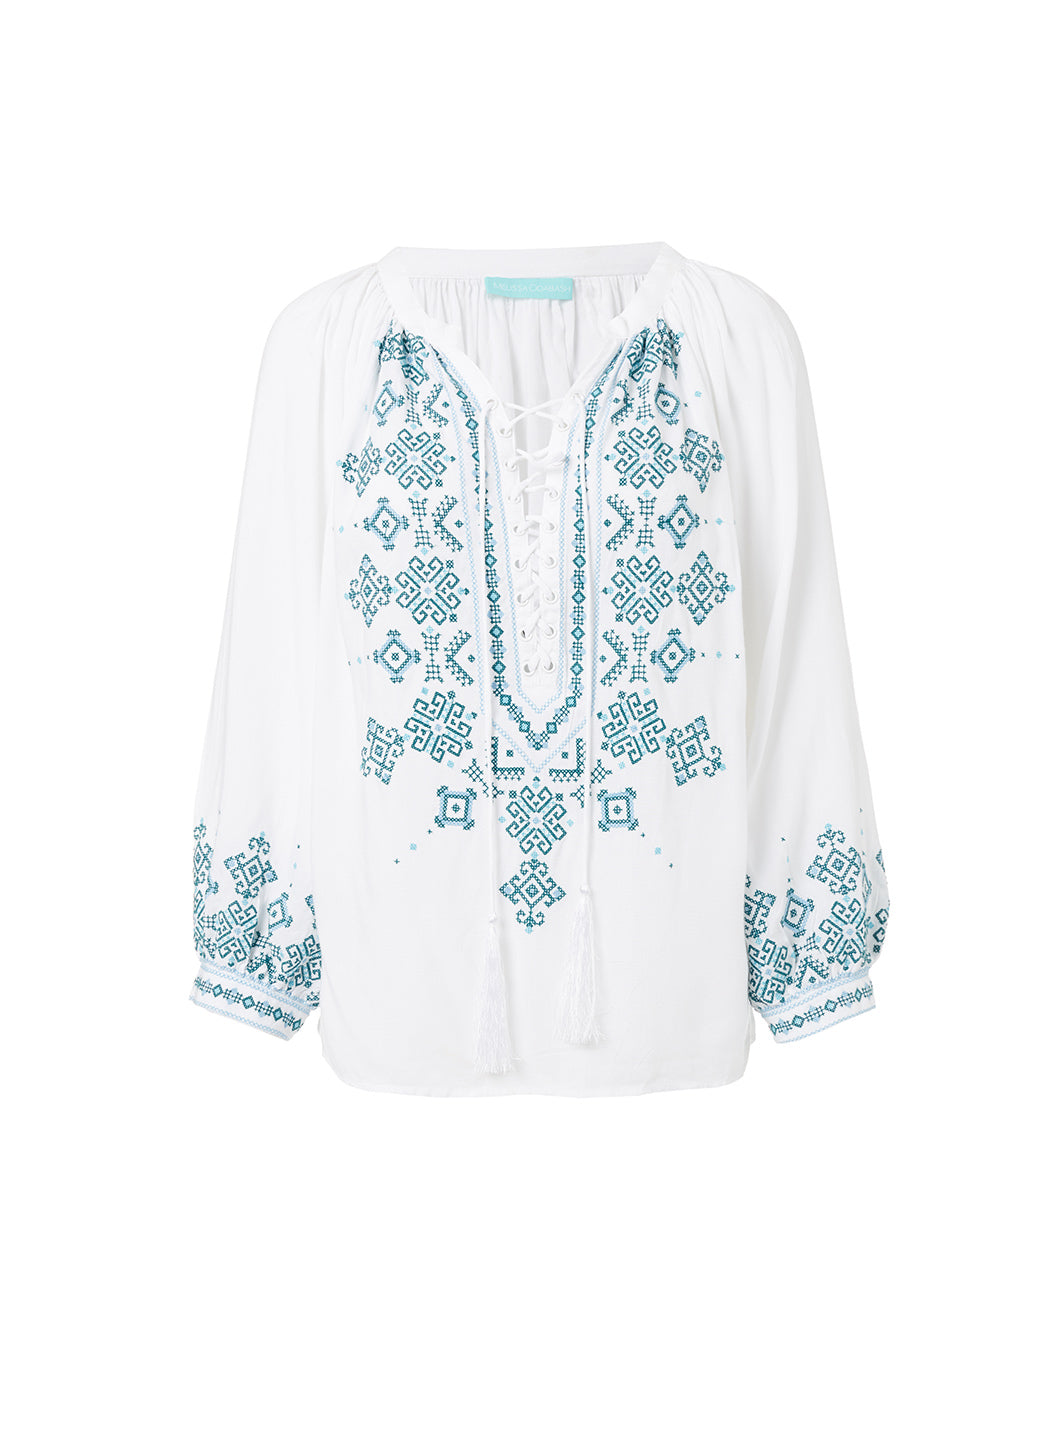 Shiv White/Mint Lace-Up Embroidered Blouse - Melissa Odabash Tops & Bottoms